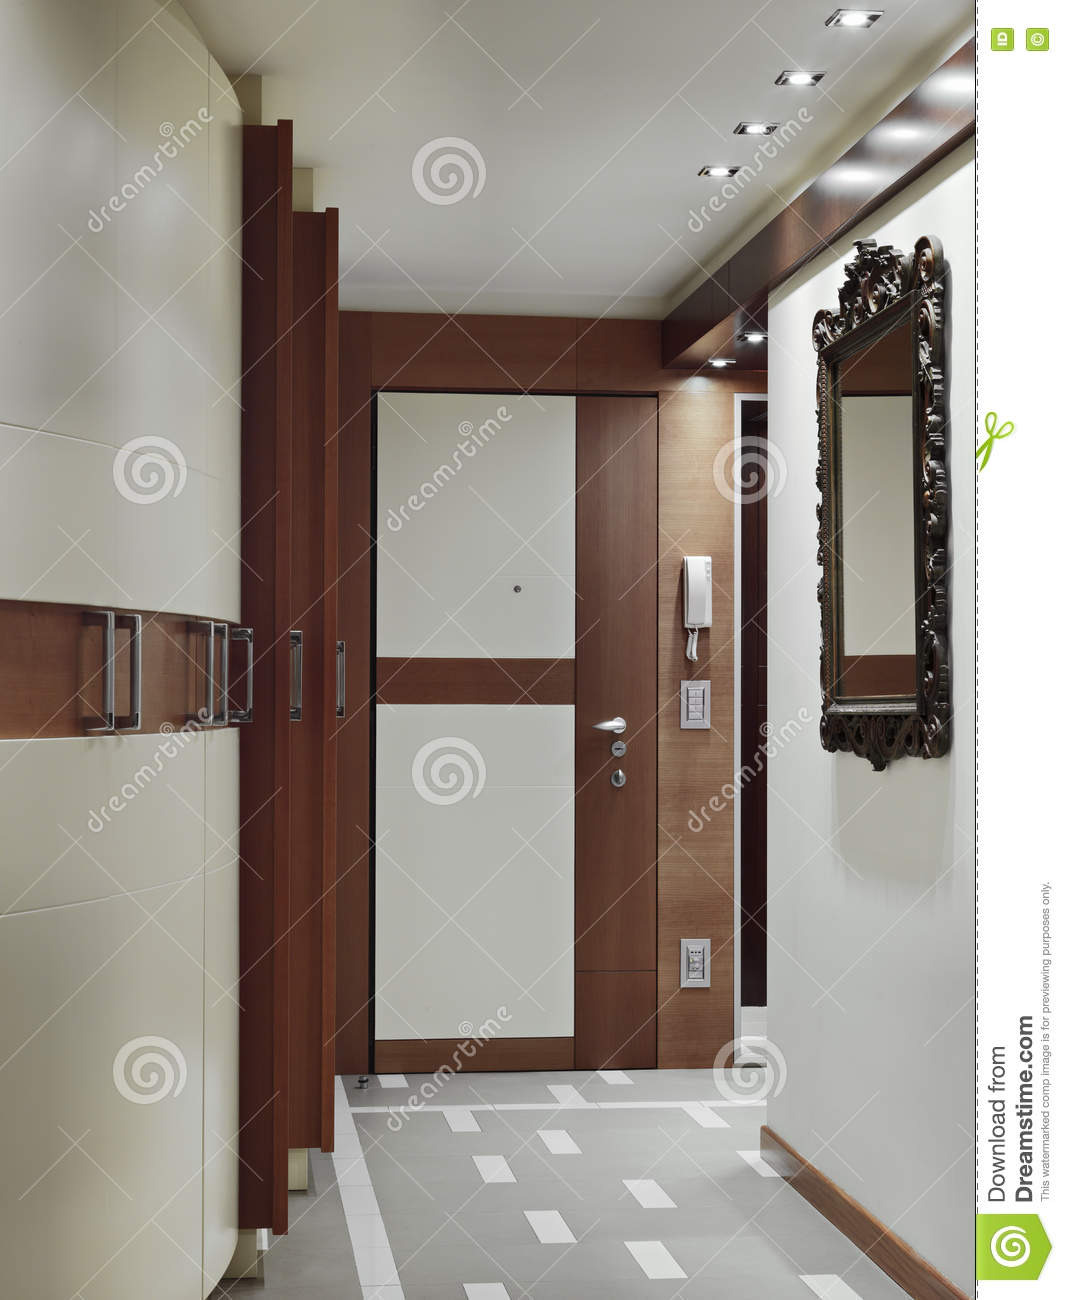 Apartment Main Door Design Awesome Modern Main Door for Entrance Apartment Stock Image